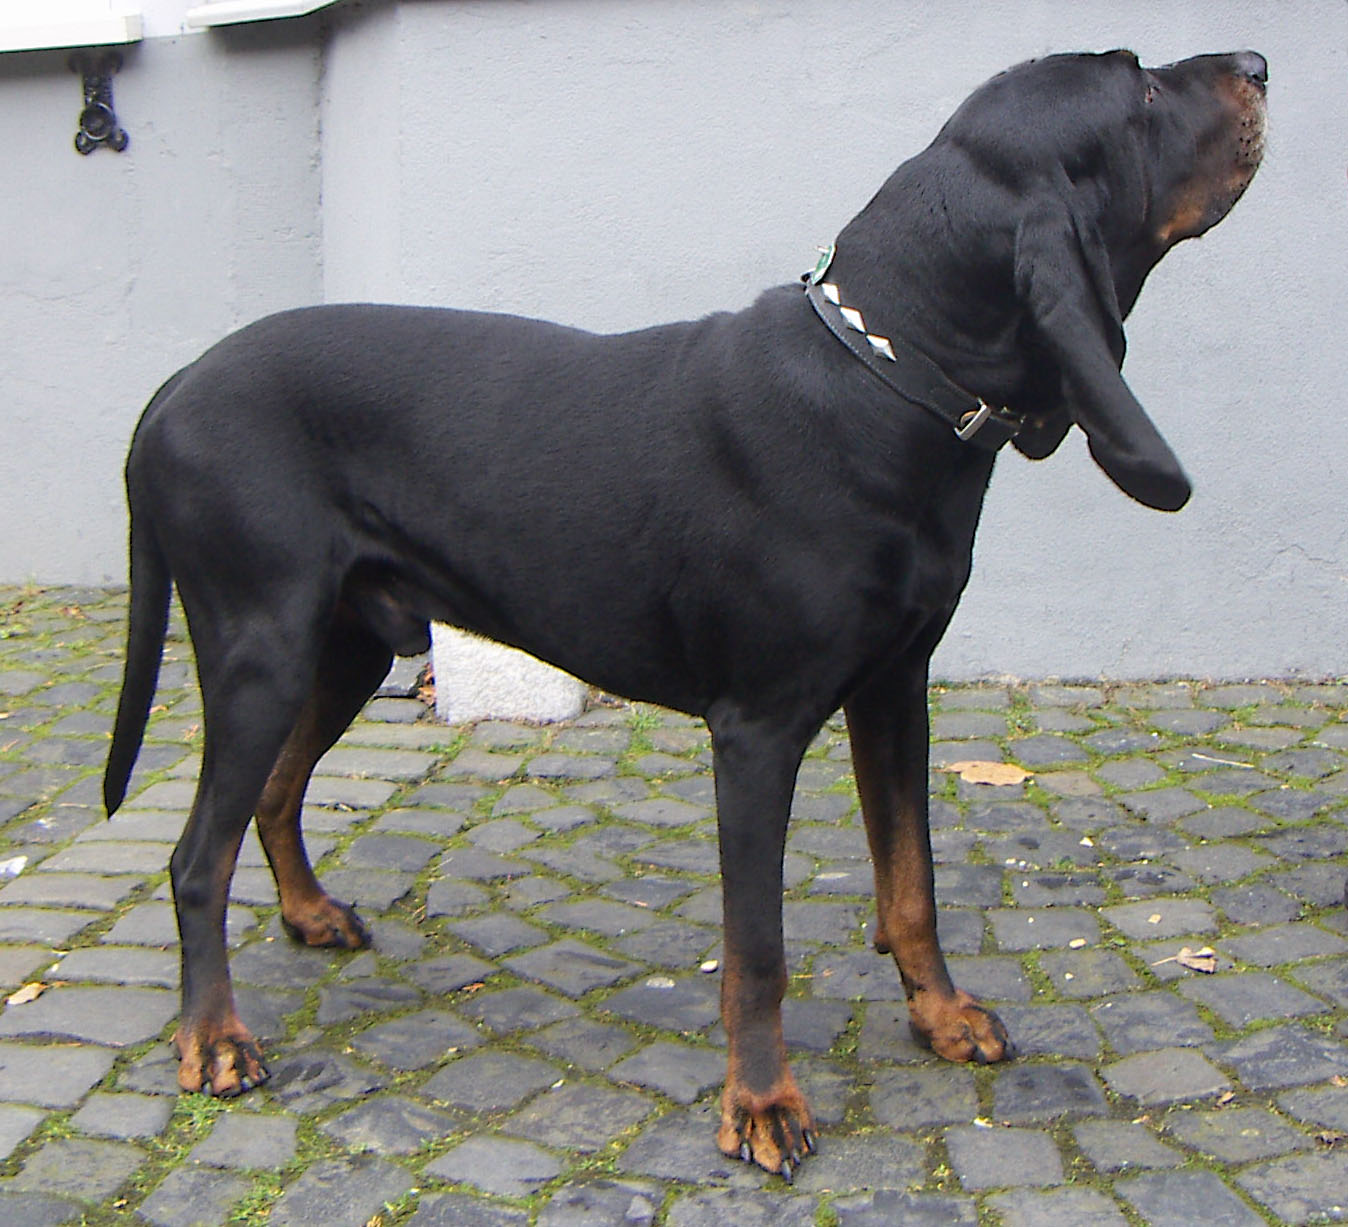 Black and Tan Coonhound - Wikipedia - photo#7